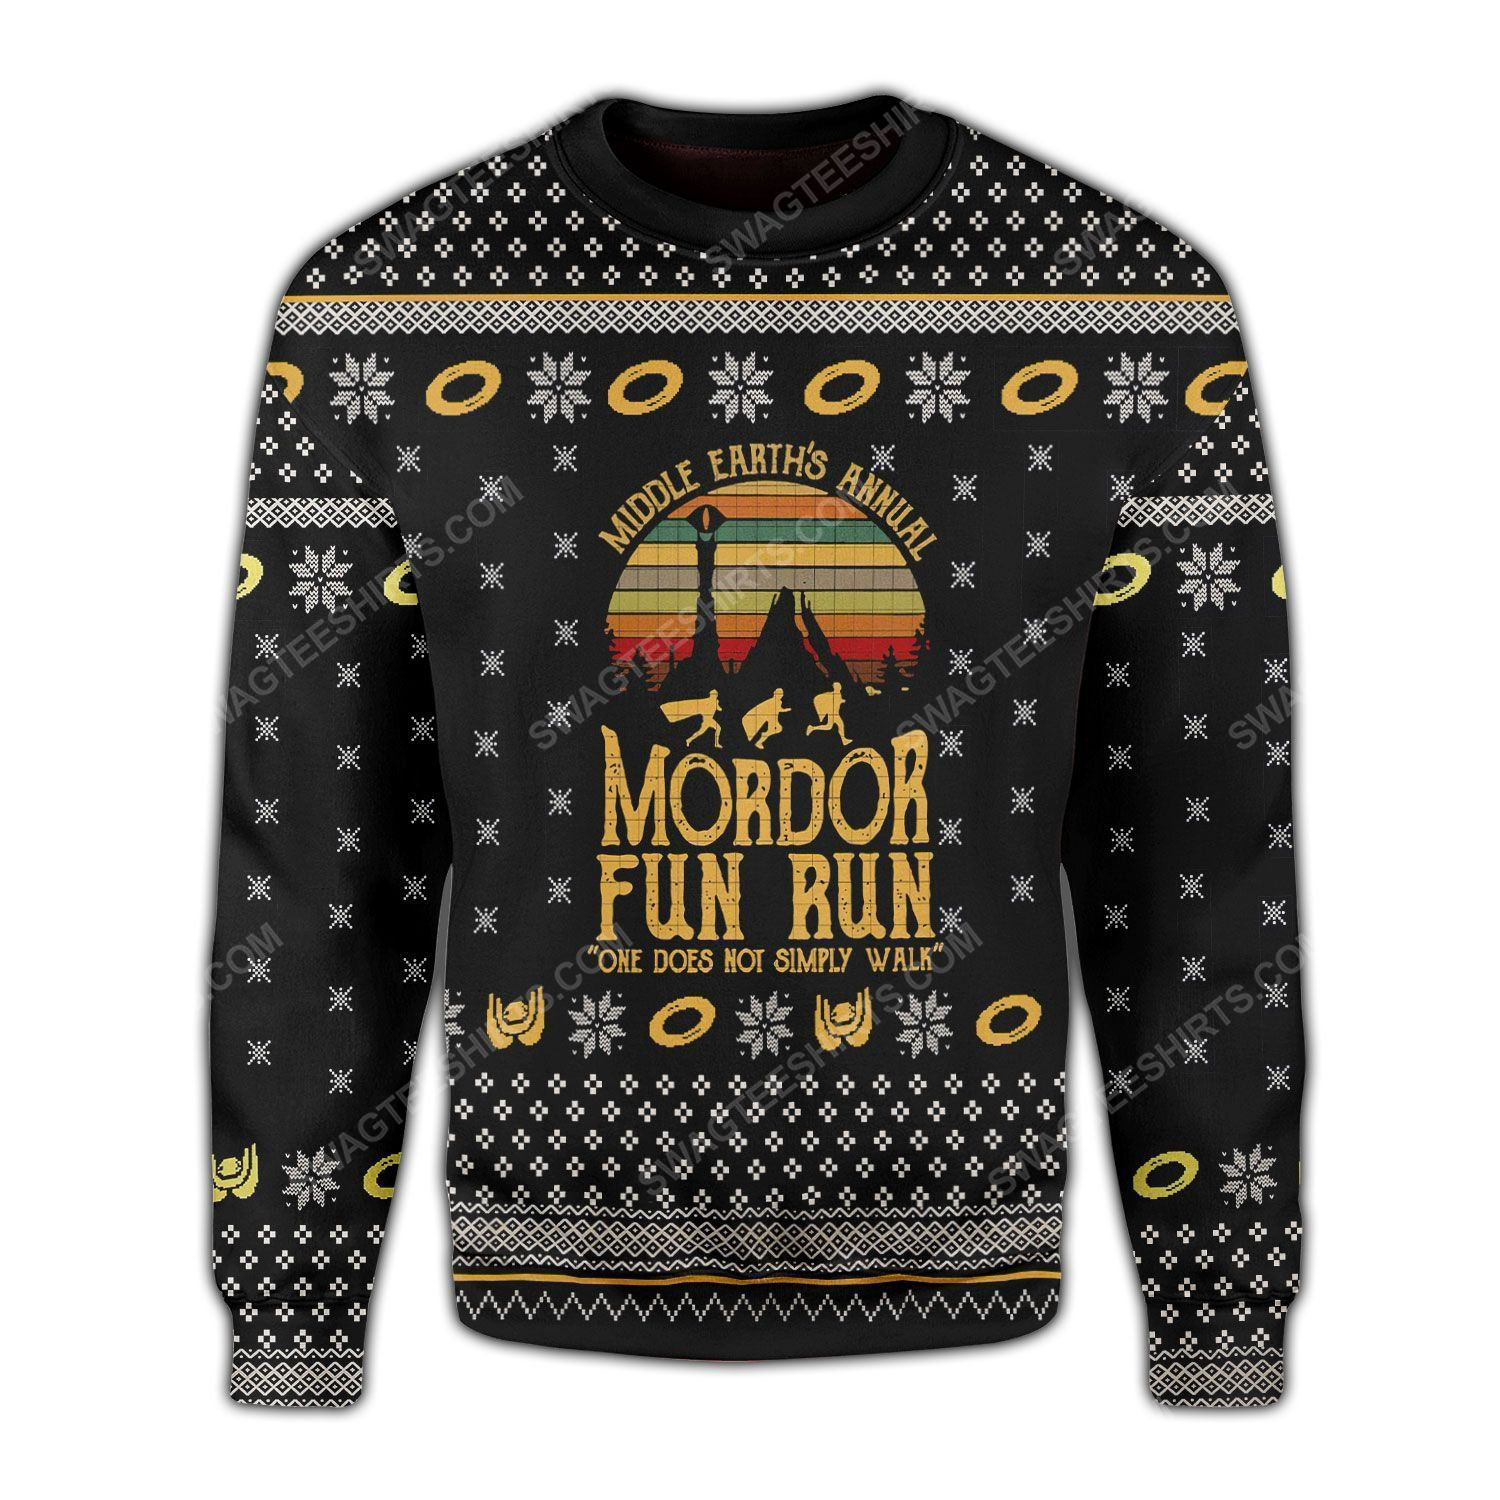 Mordor fun run the lord of the rings ugly christmas sweater